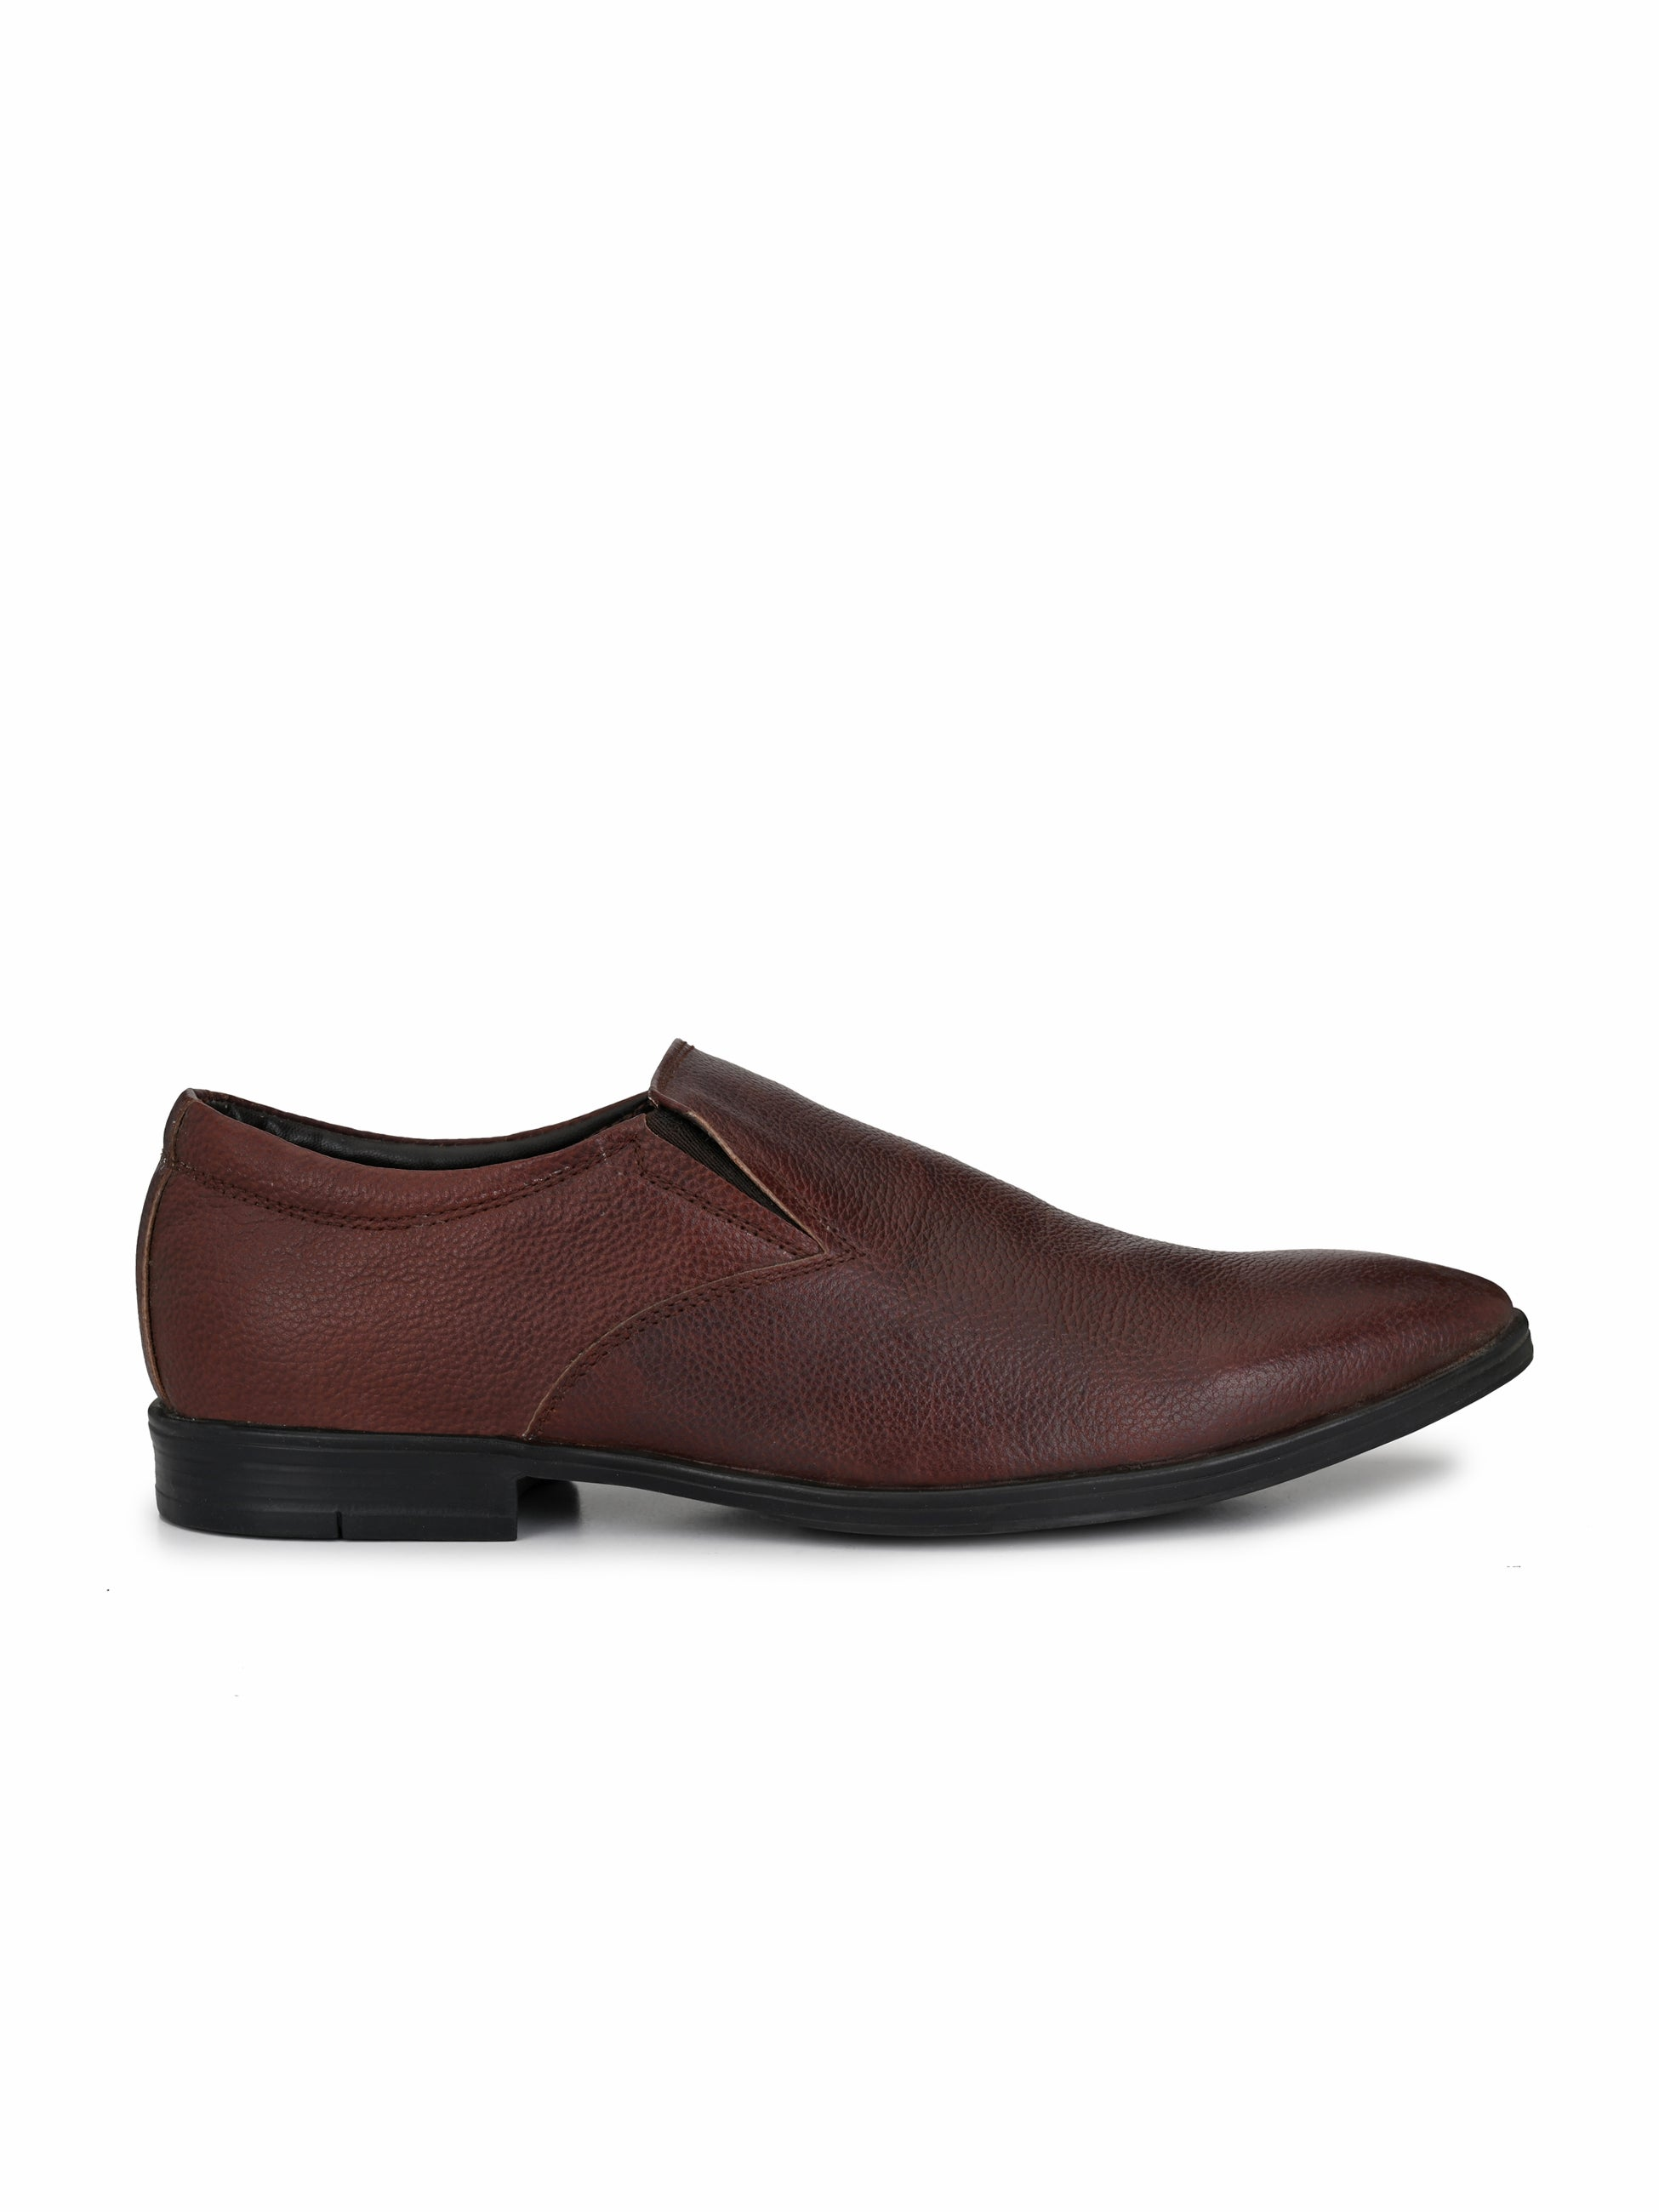 Brown Leather Slip-on Shoes - shoegaro